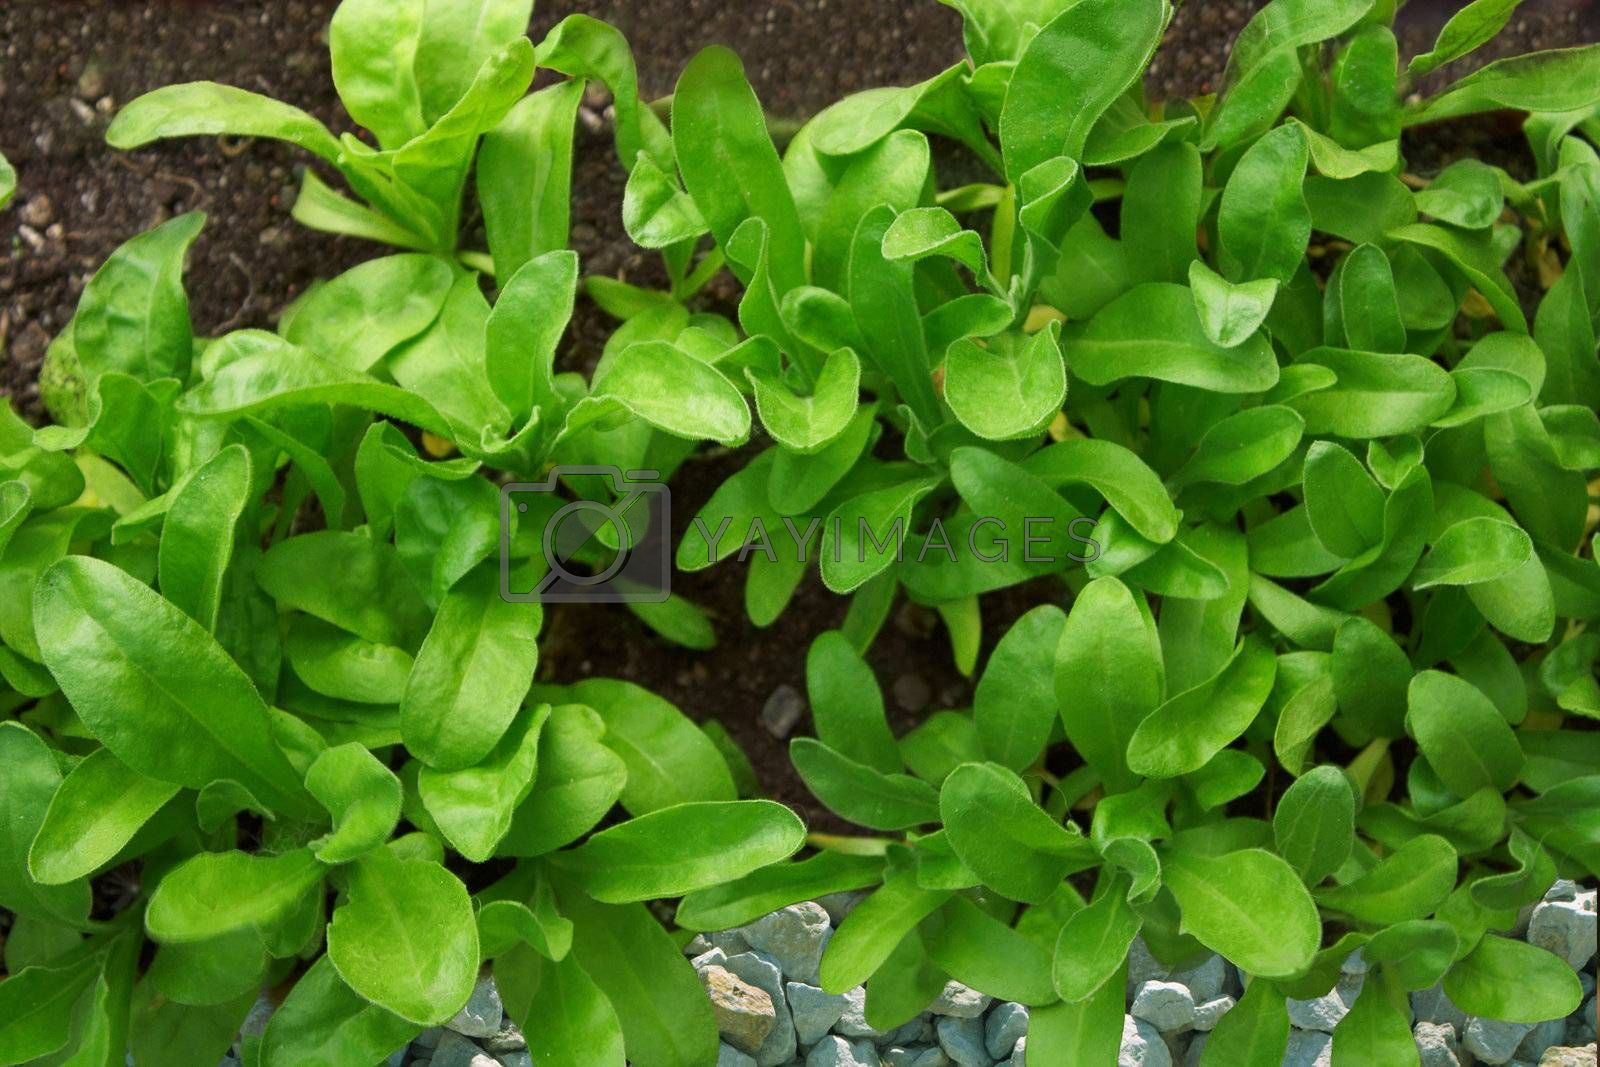 Green leaves on a stone and earthen background